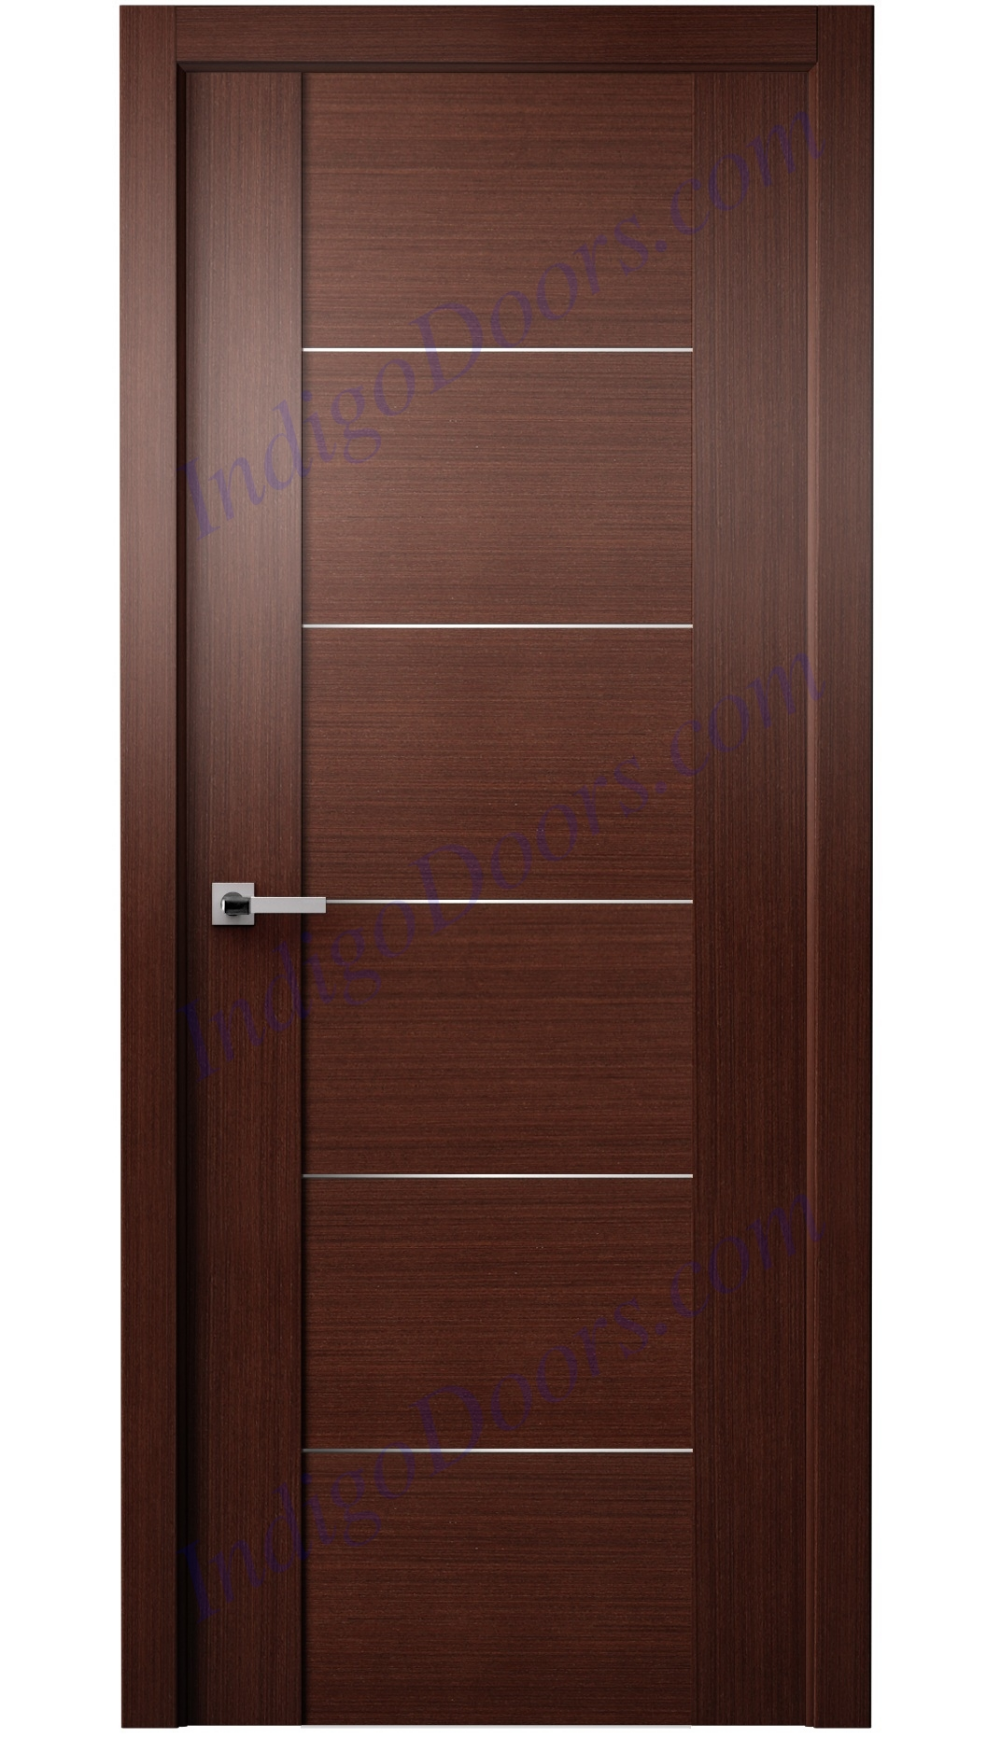 Gardi Interior Door Wenge  Indigo doors  Wooden front door